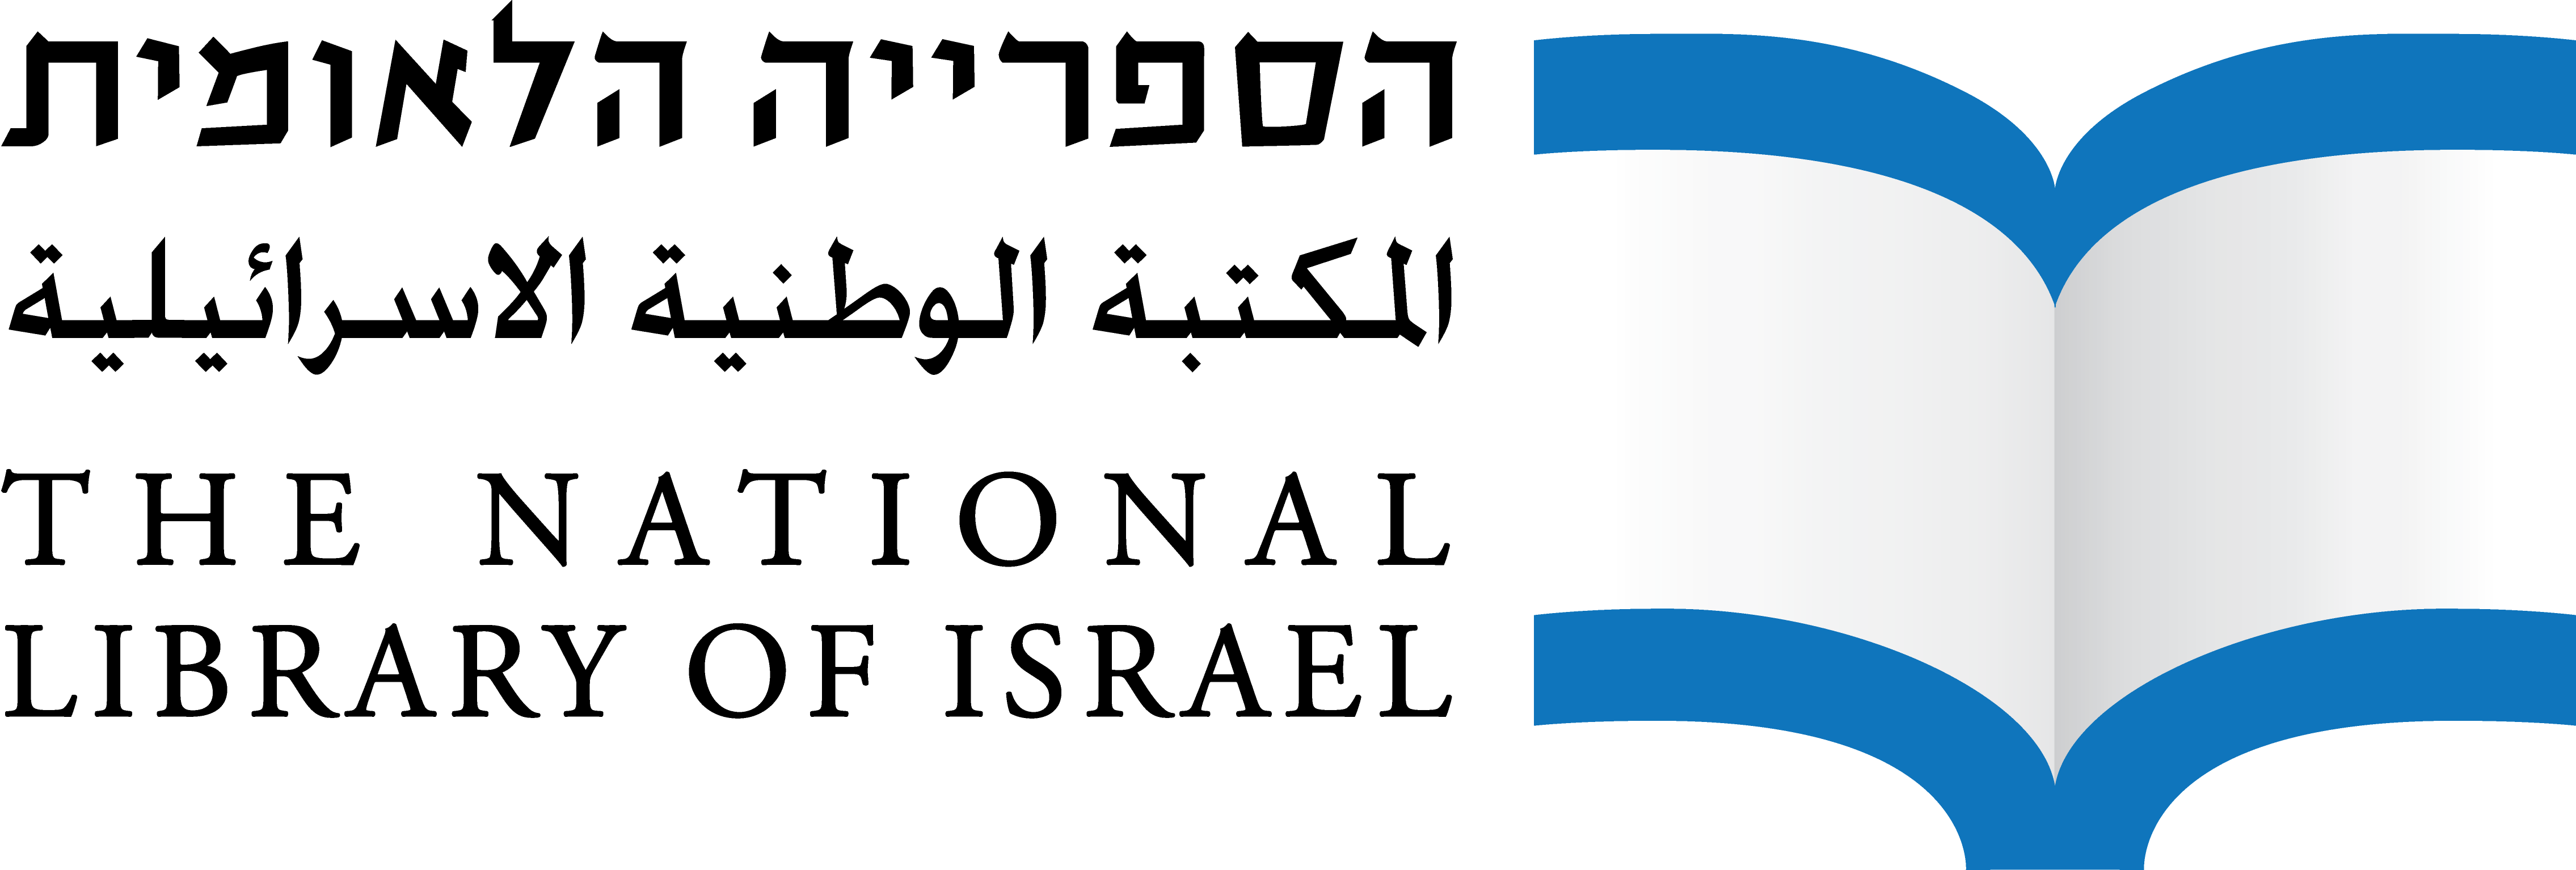 Logo of the national libary of Israel